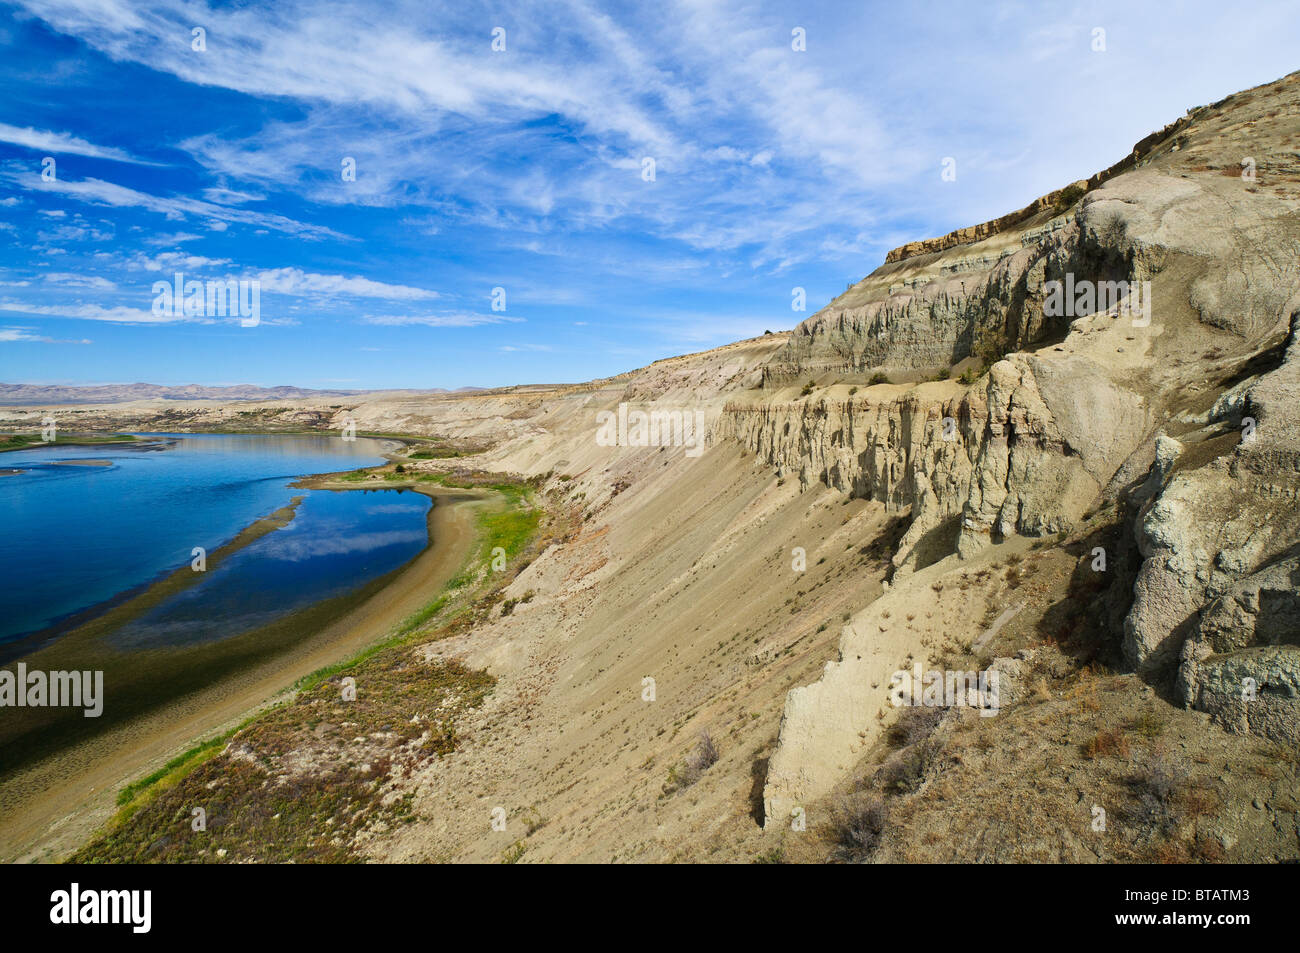 White Bluffs of Hanford Reach National Monument and Saddle Mountain National Wildlife Refuge, central Washington. - Stock Image